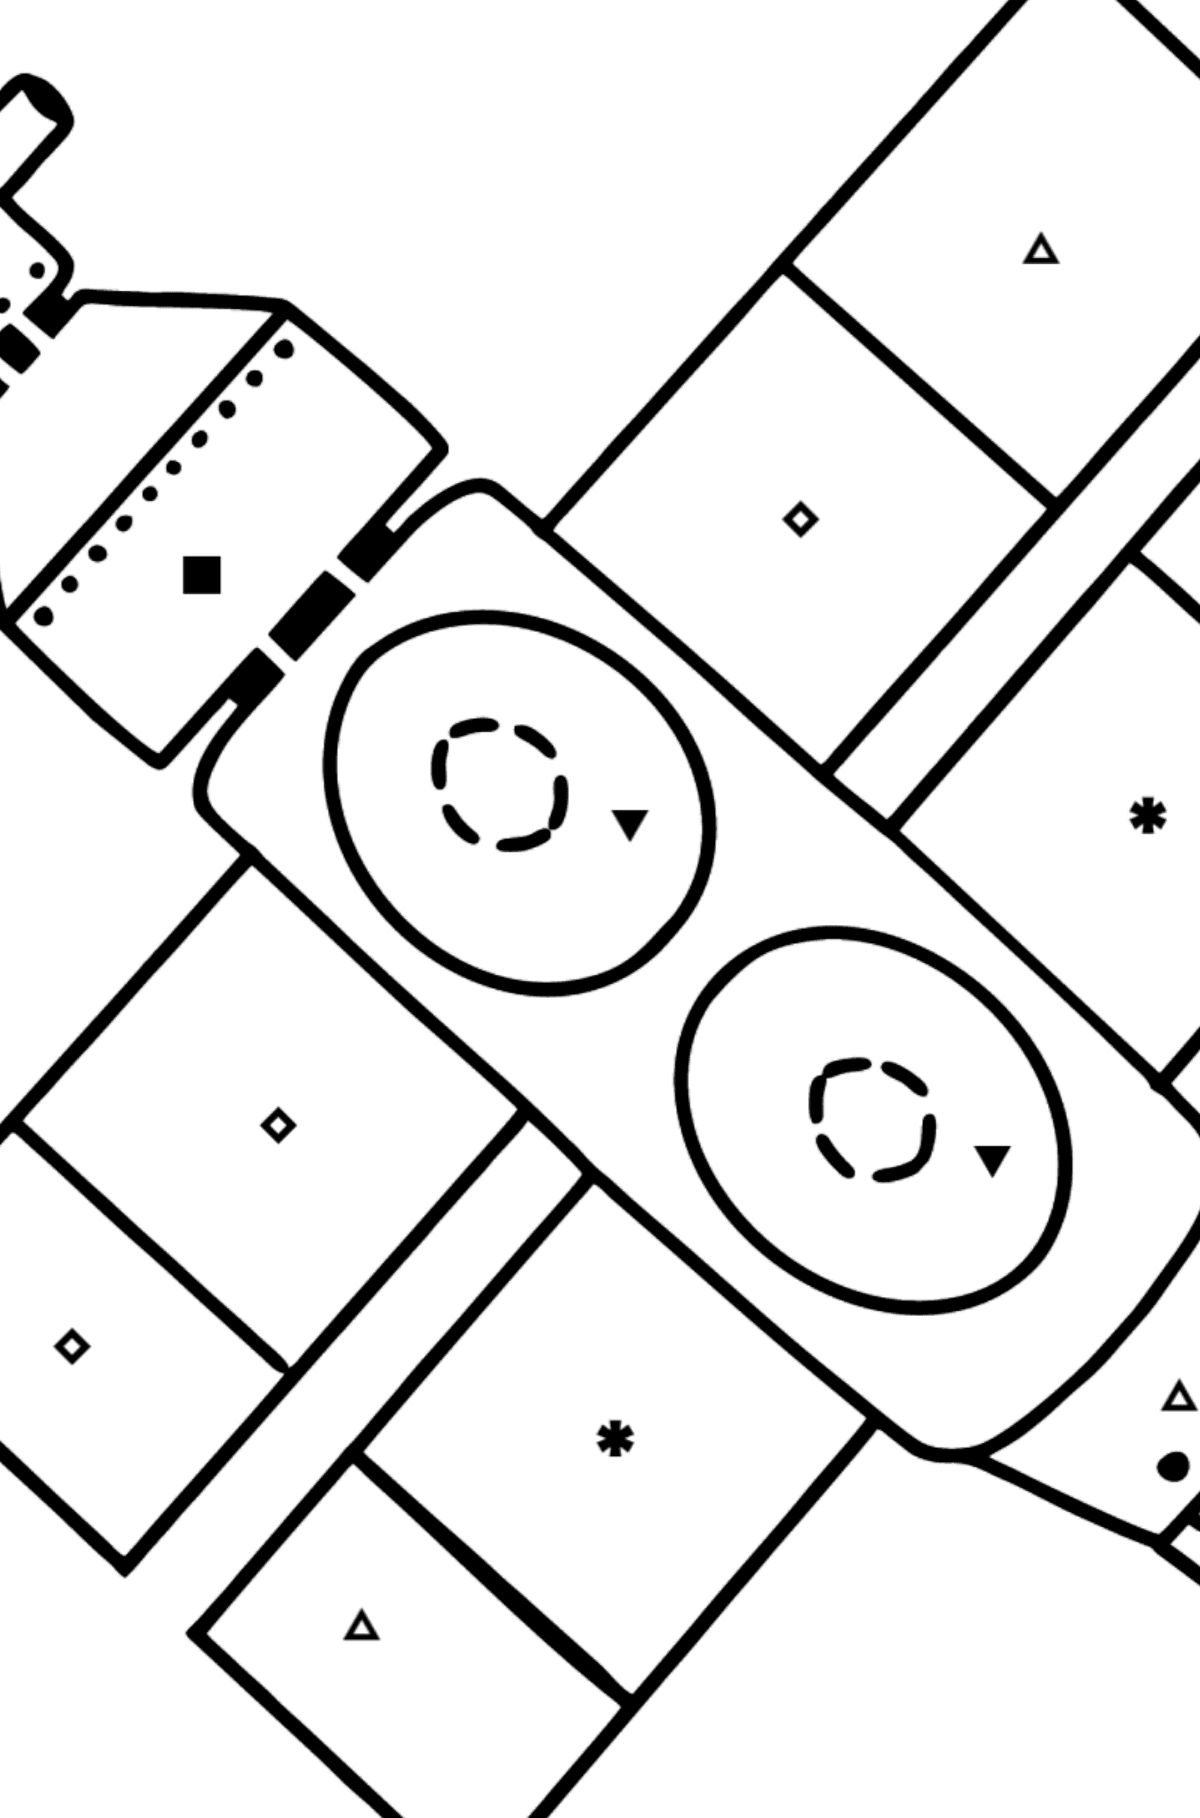 Spaceship coloring page - Coloring by Symbols and Geometric Shapes for Kids